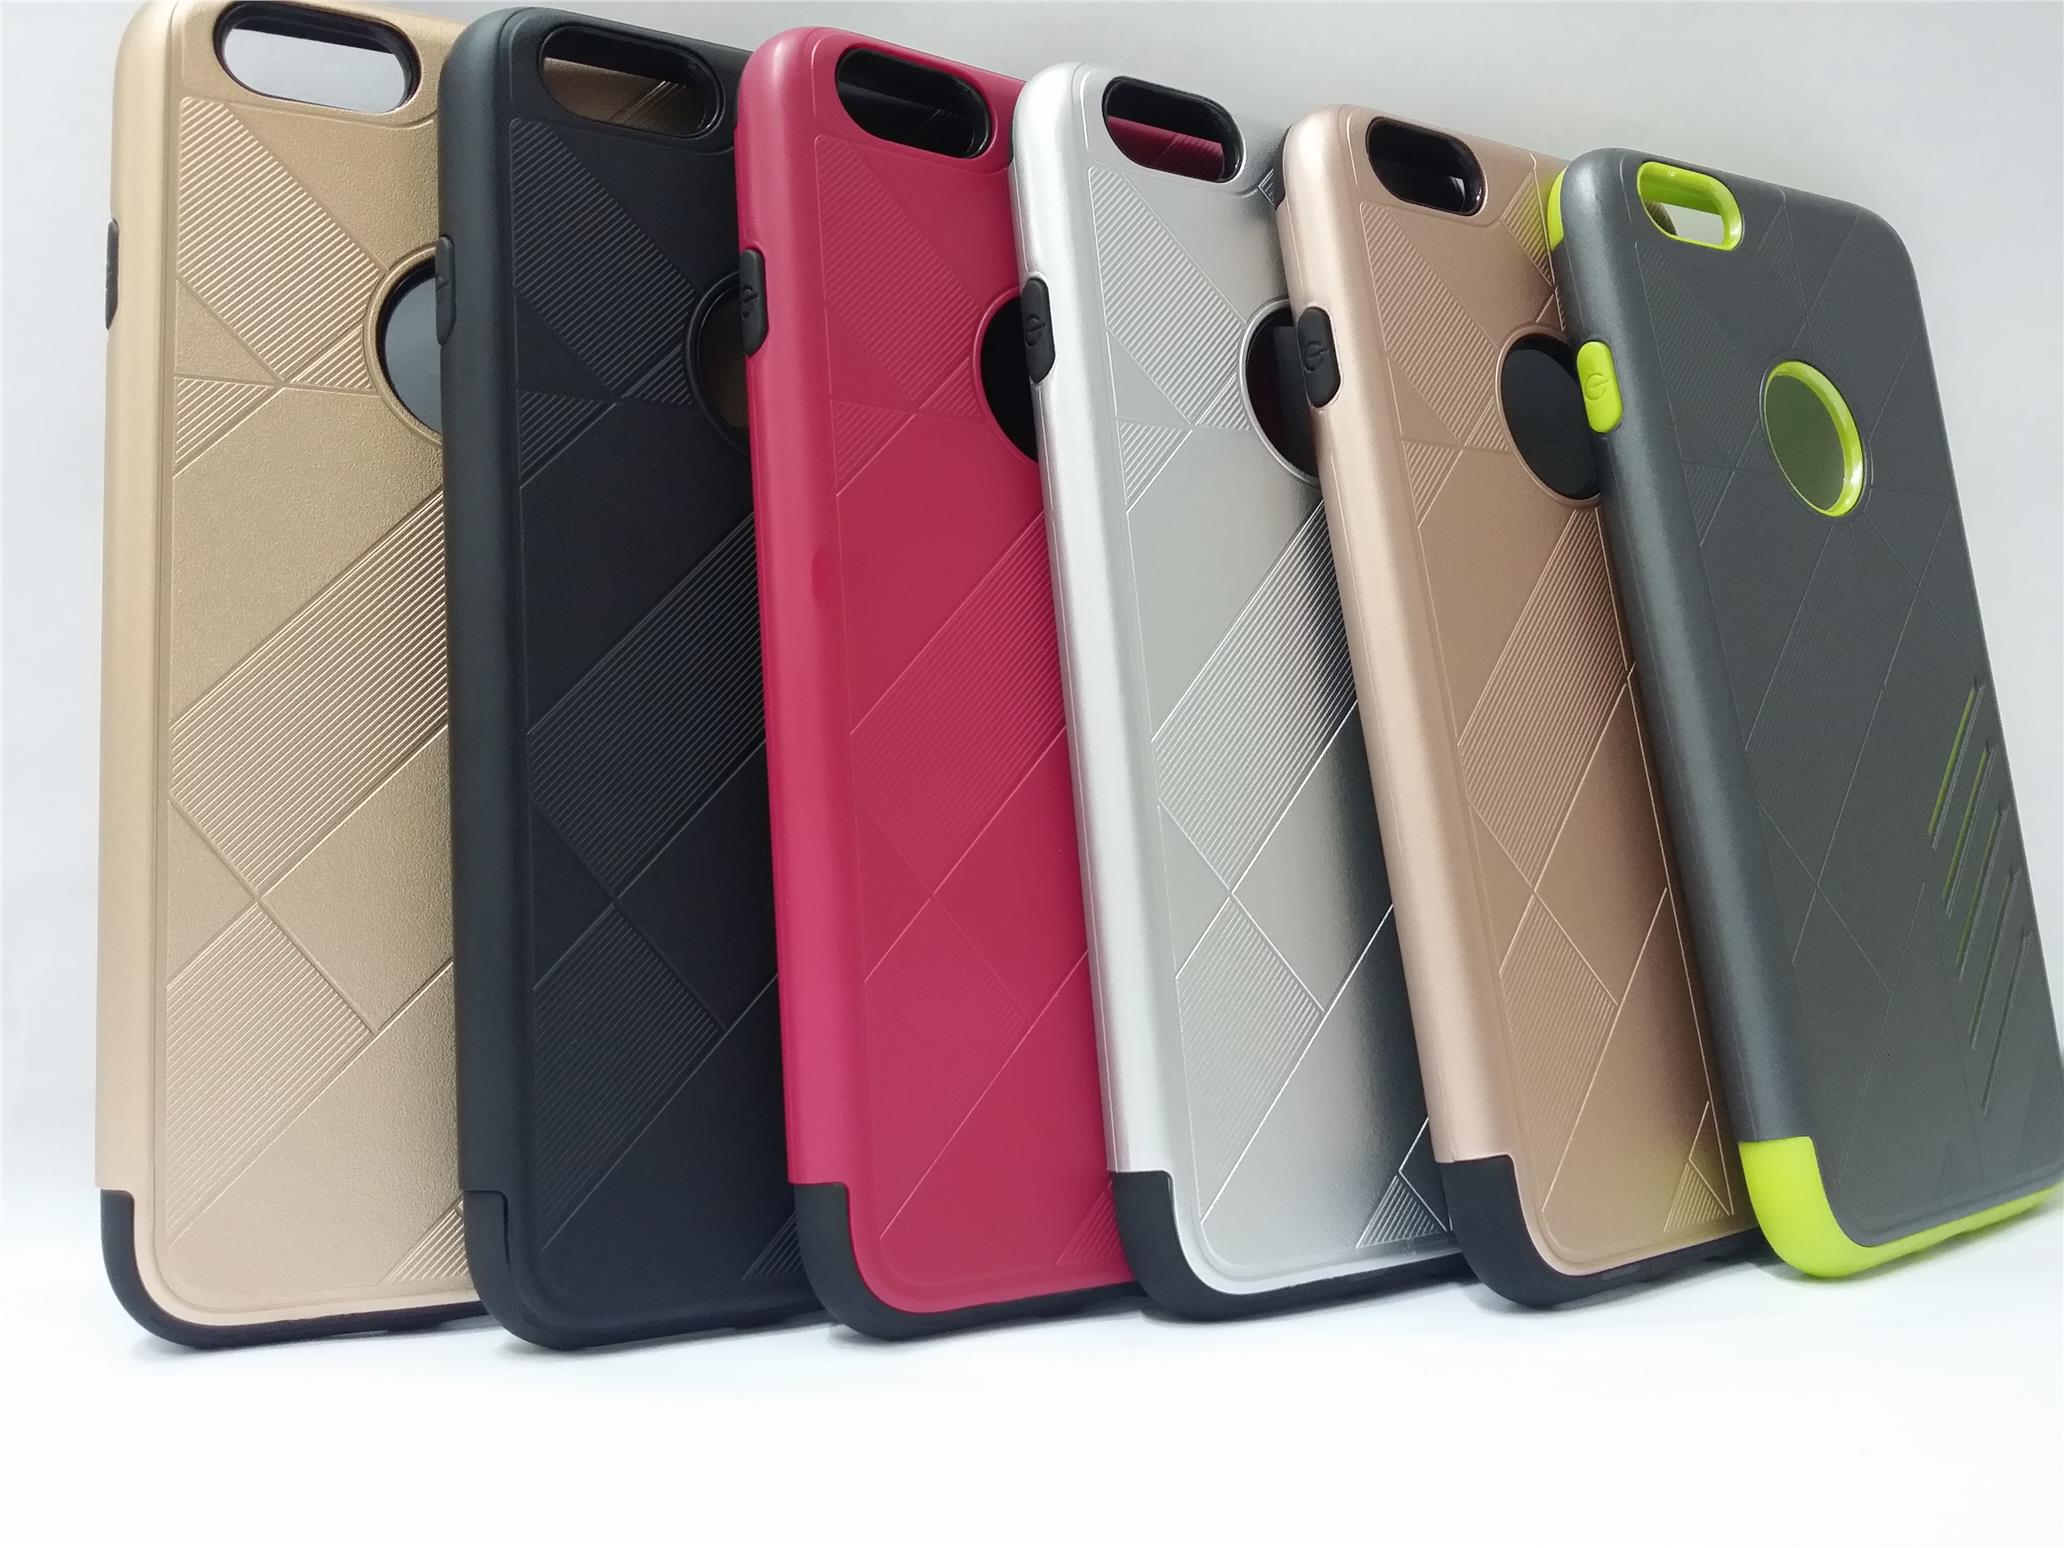 Caseology Case 1 For Iphone 5 5s 6 End 10 18 2016 627 Pm 6s Plus Samsung Note